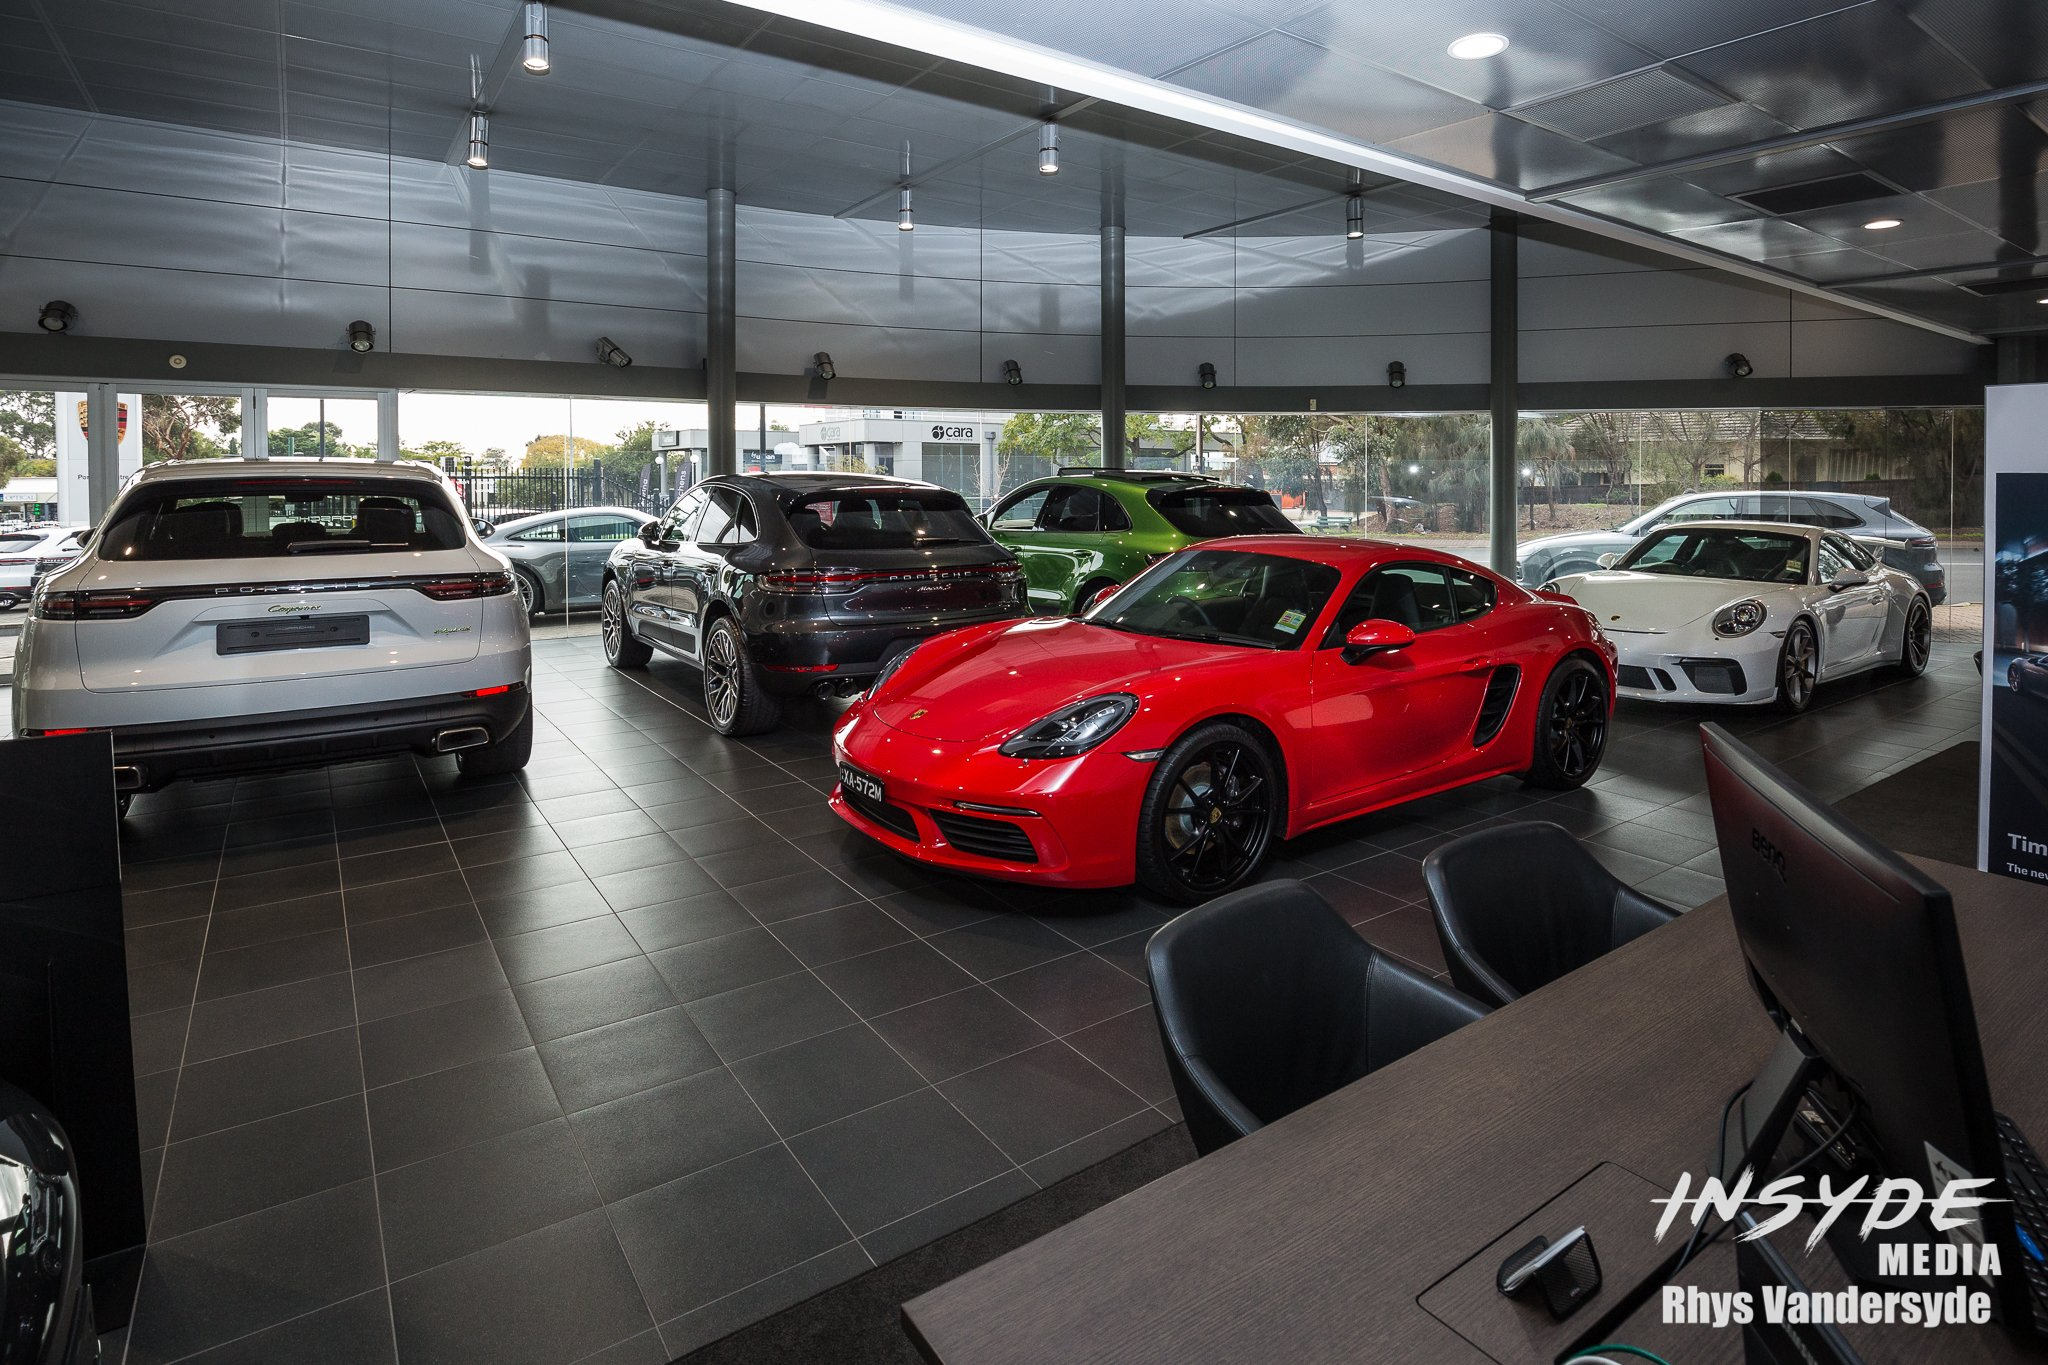 Photo Shoot: Porsche Center Adelaide